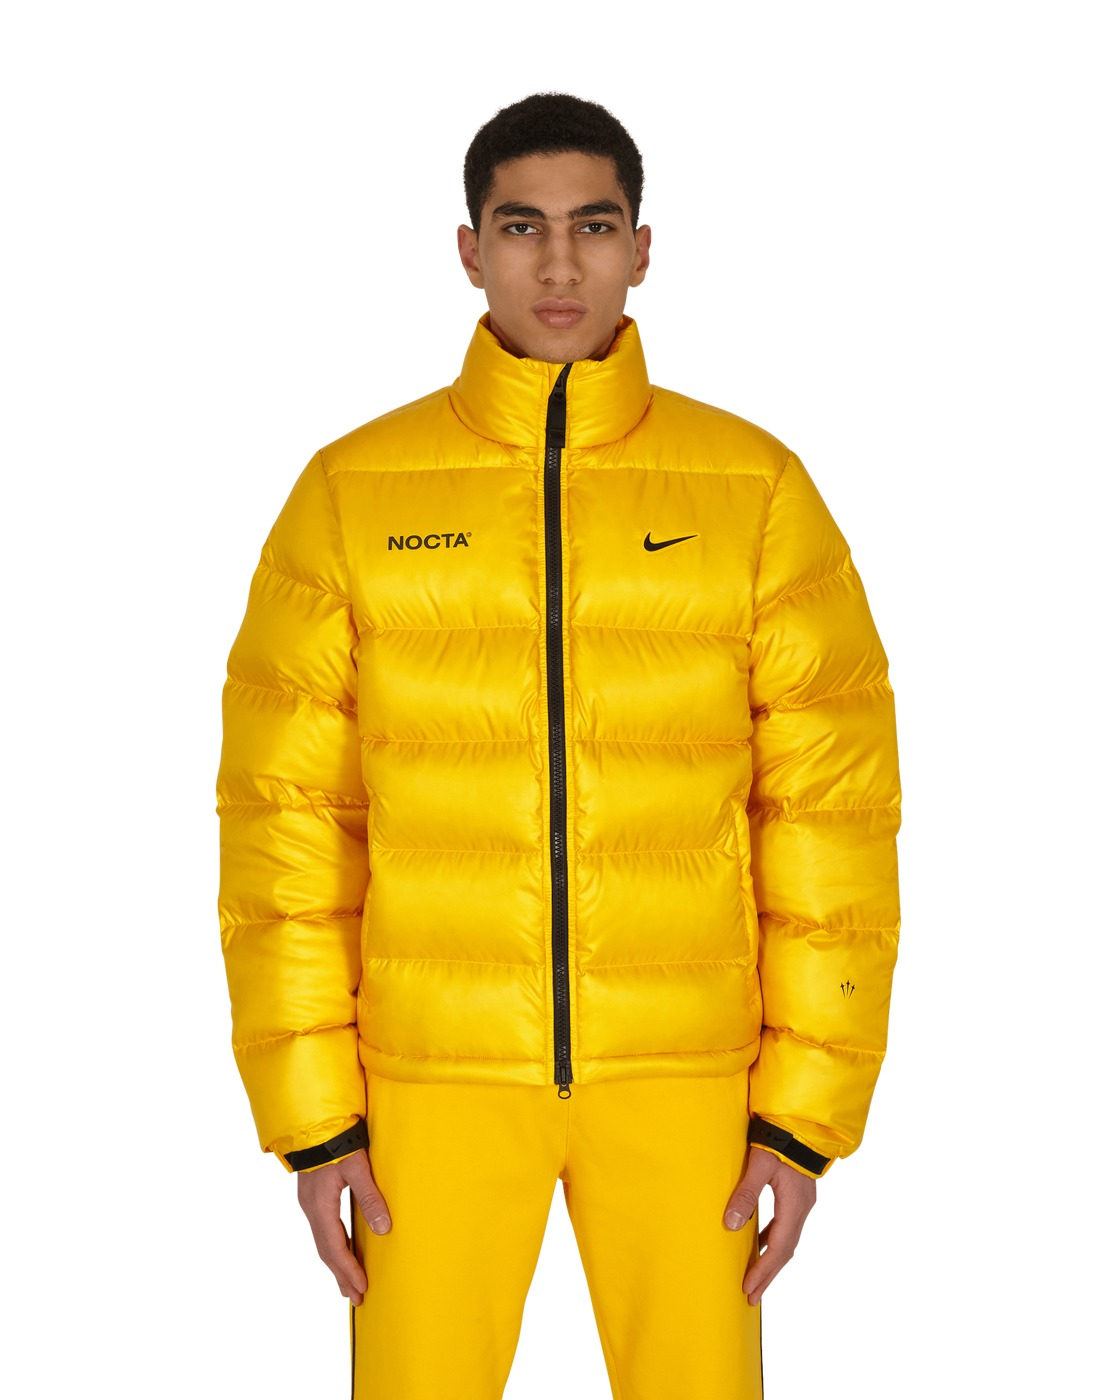 Nike Special Project Nocta Puffer Jacket University Gold